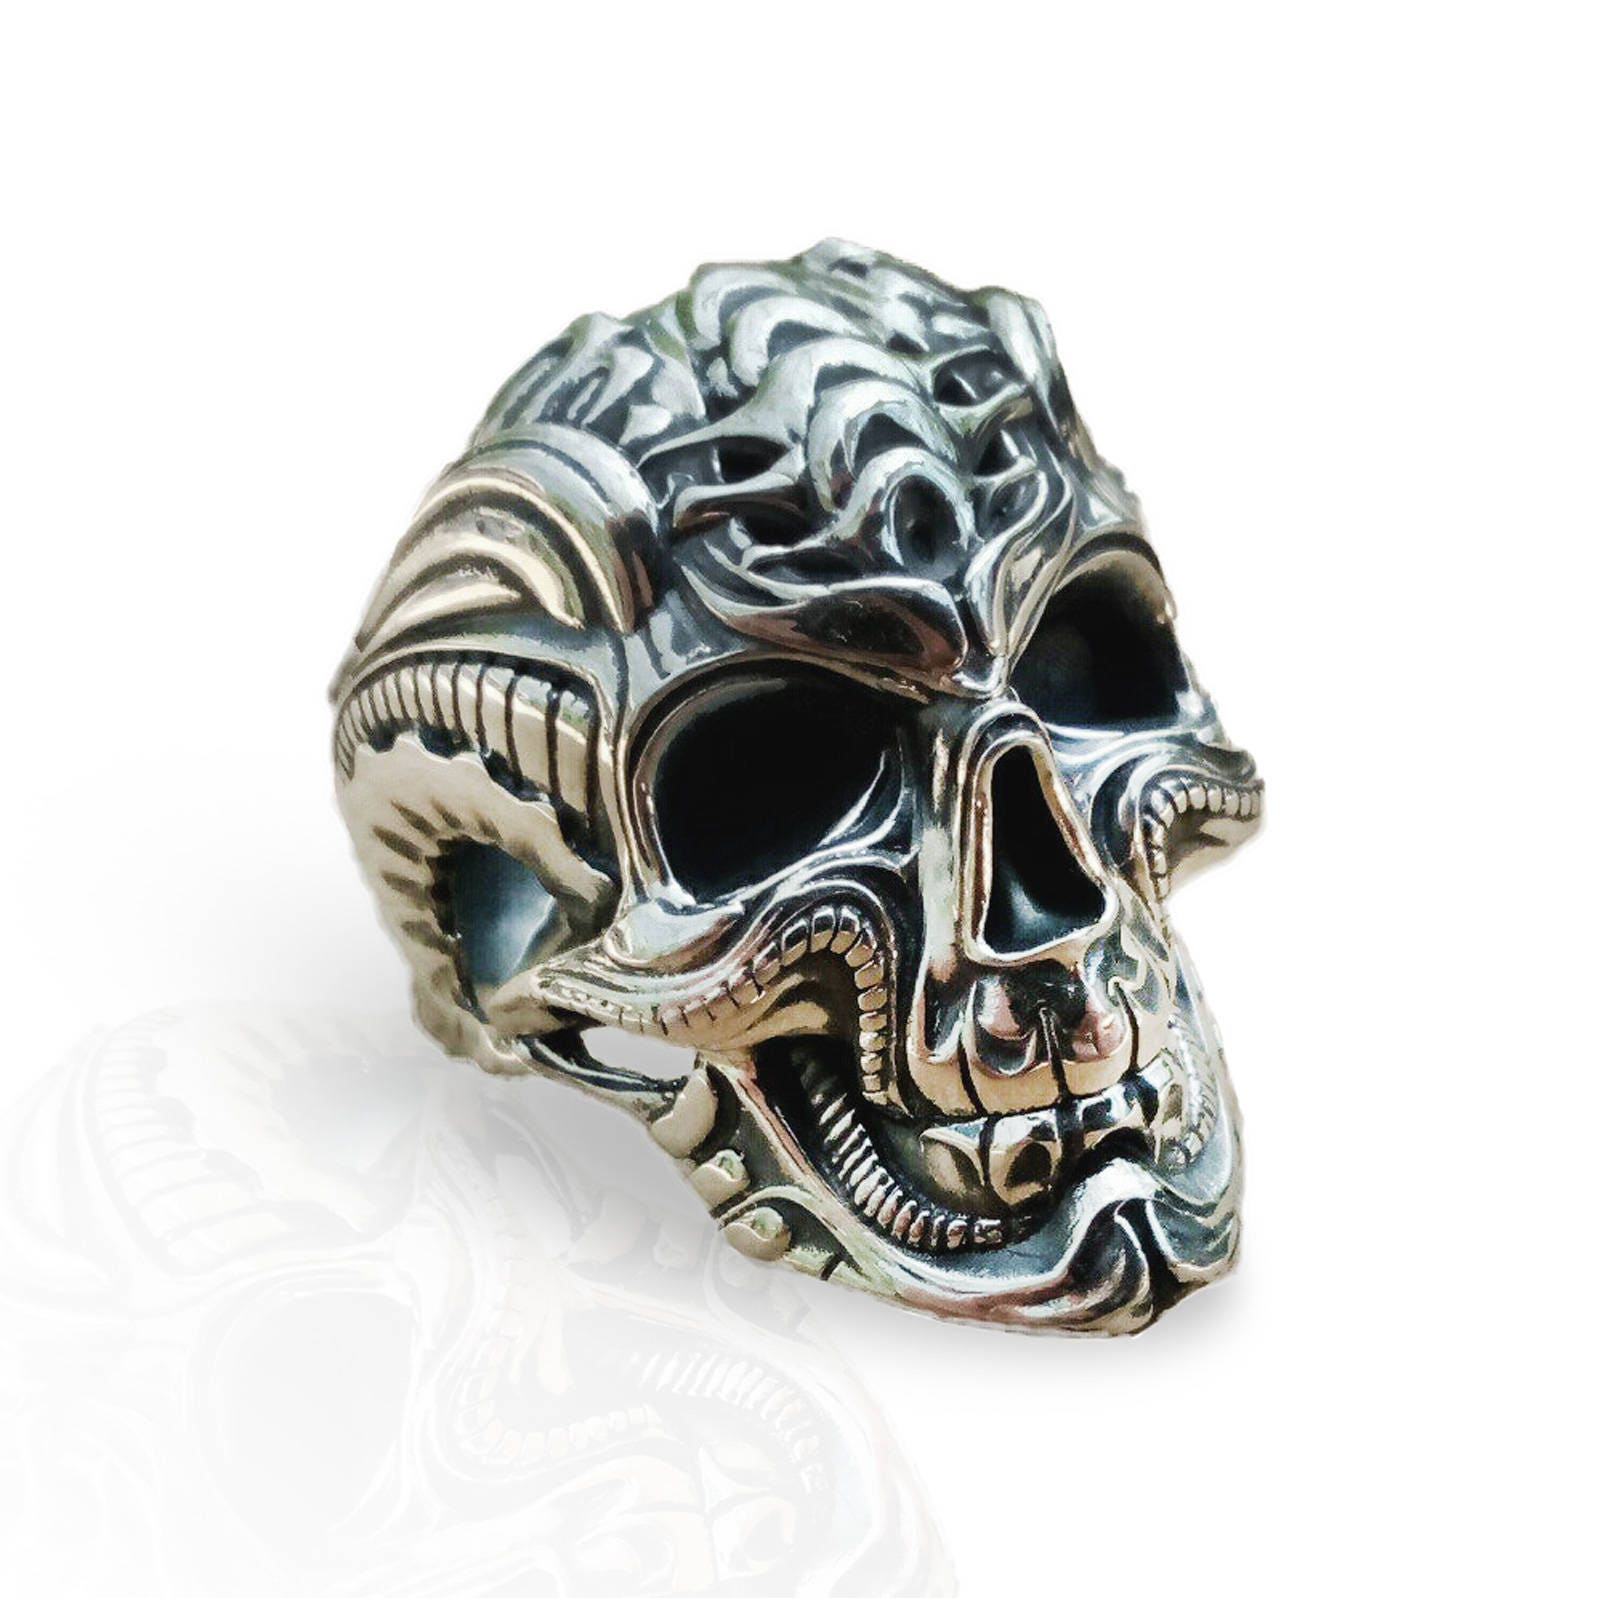 golden bikers men gold silver stainless the head cool hollow buy steel rings ring skull biker for online products ravens band jewelry black skeleton mens goth